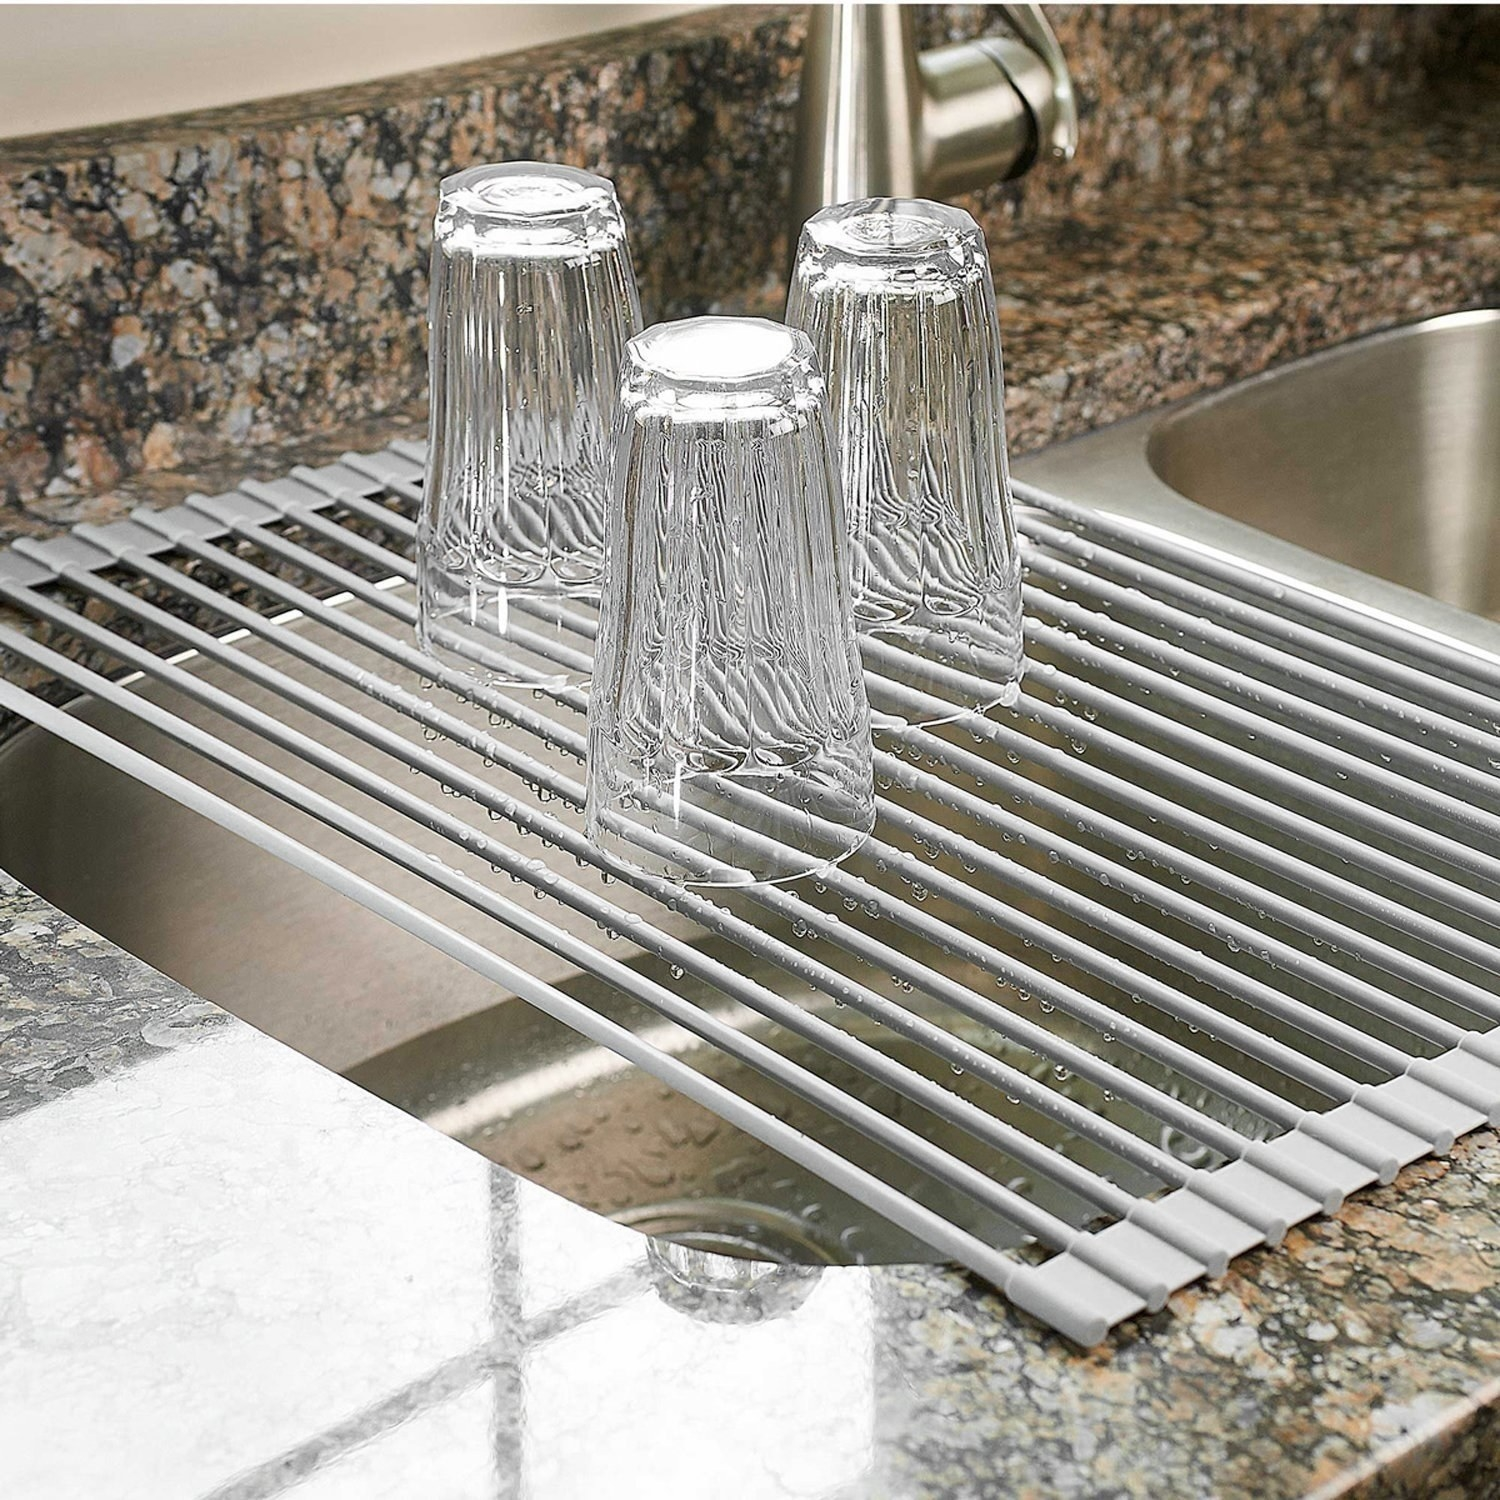 Drying rack placed across the sink with glasses placed downward and drying